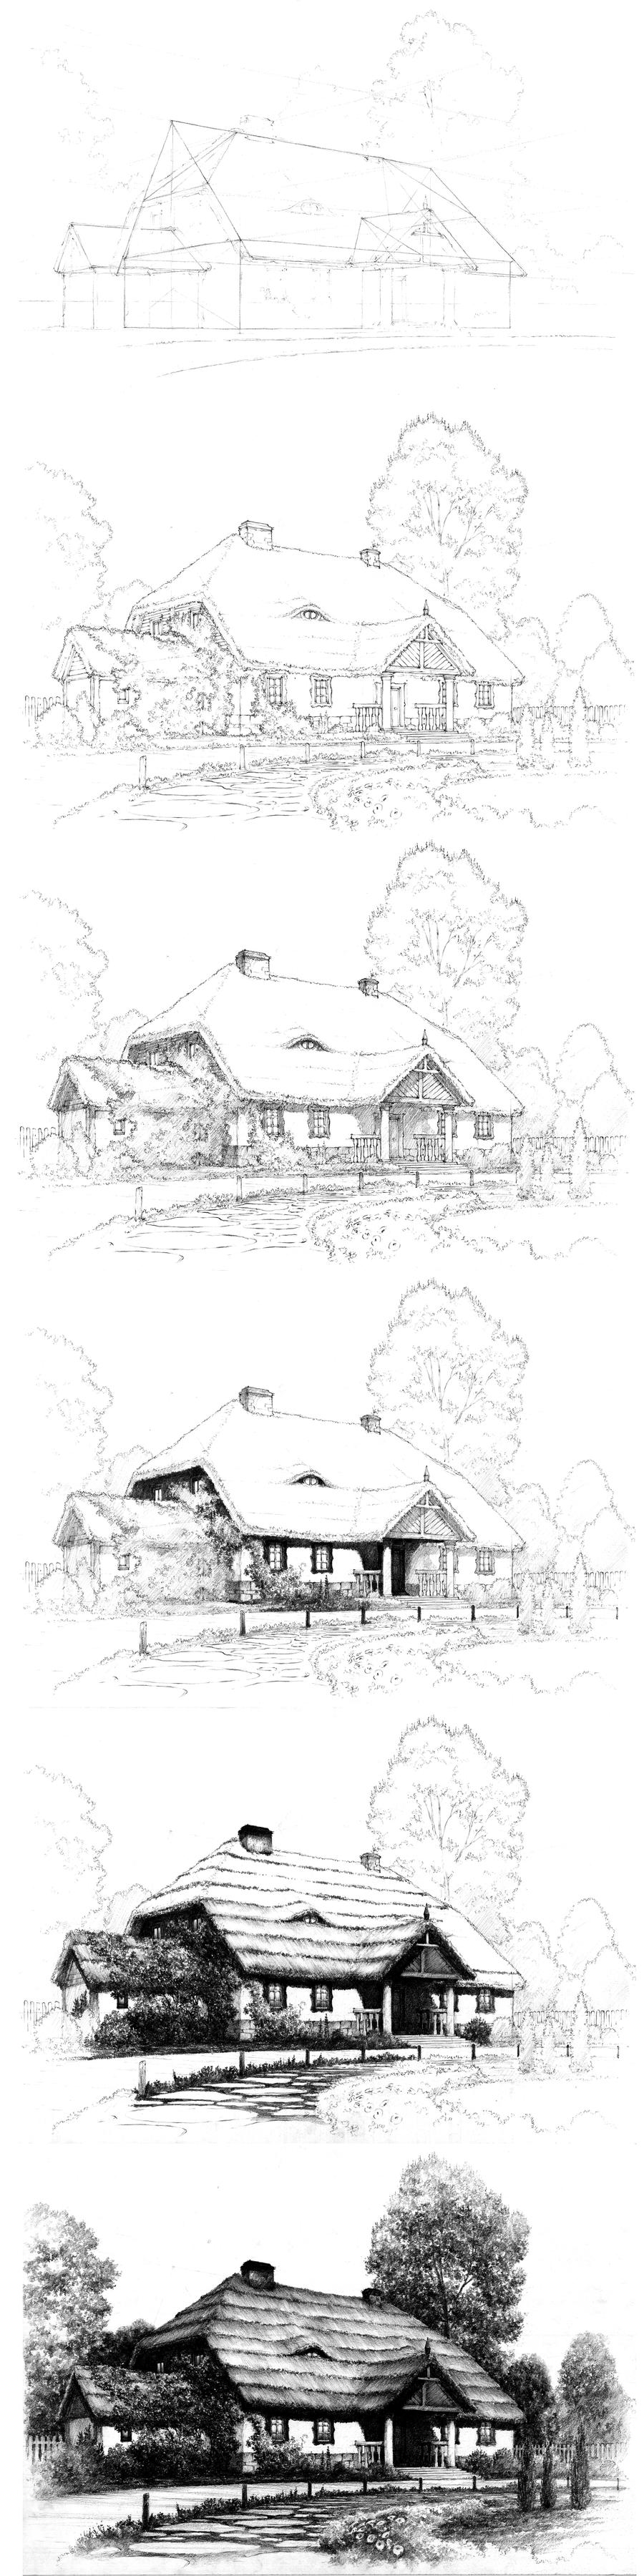 Old house tutorial by lustrzany on deviantart for Classic house tutorial